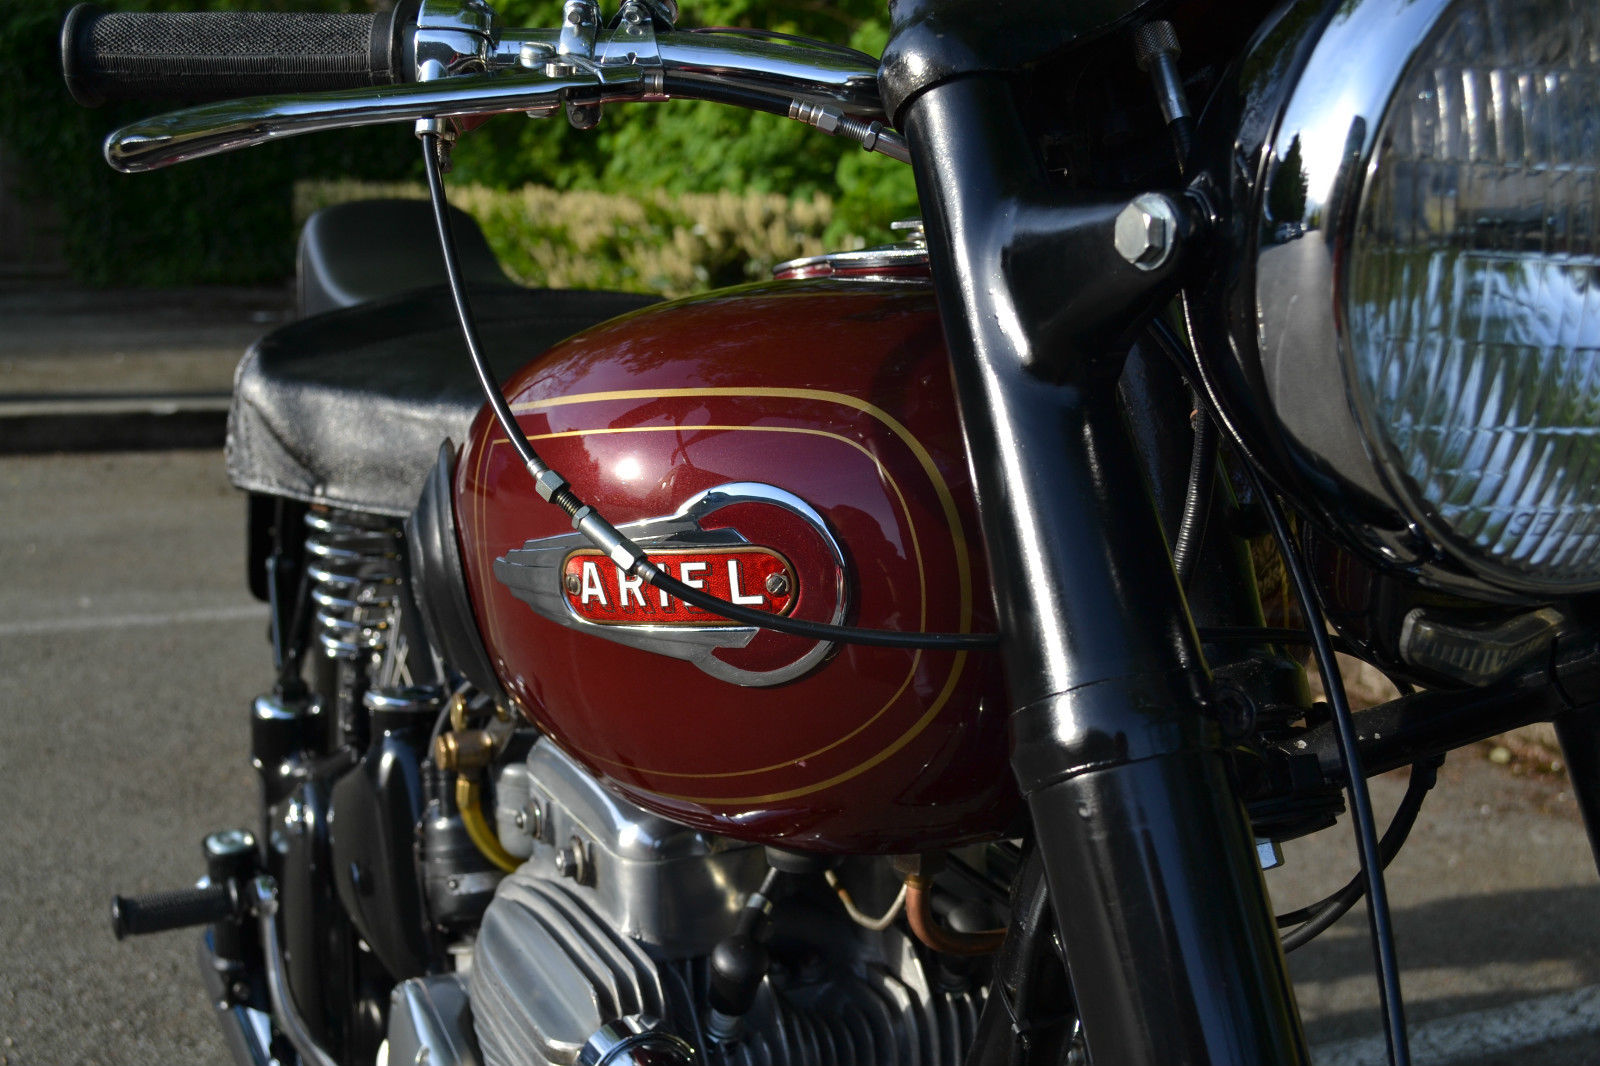 Ariel Square Four - 1952 - Throttle Cable, Ariel Badge, Forks and Lever.